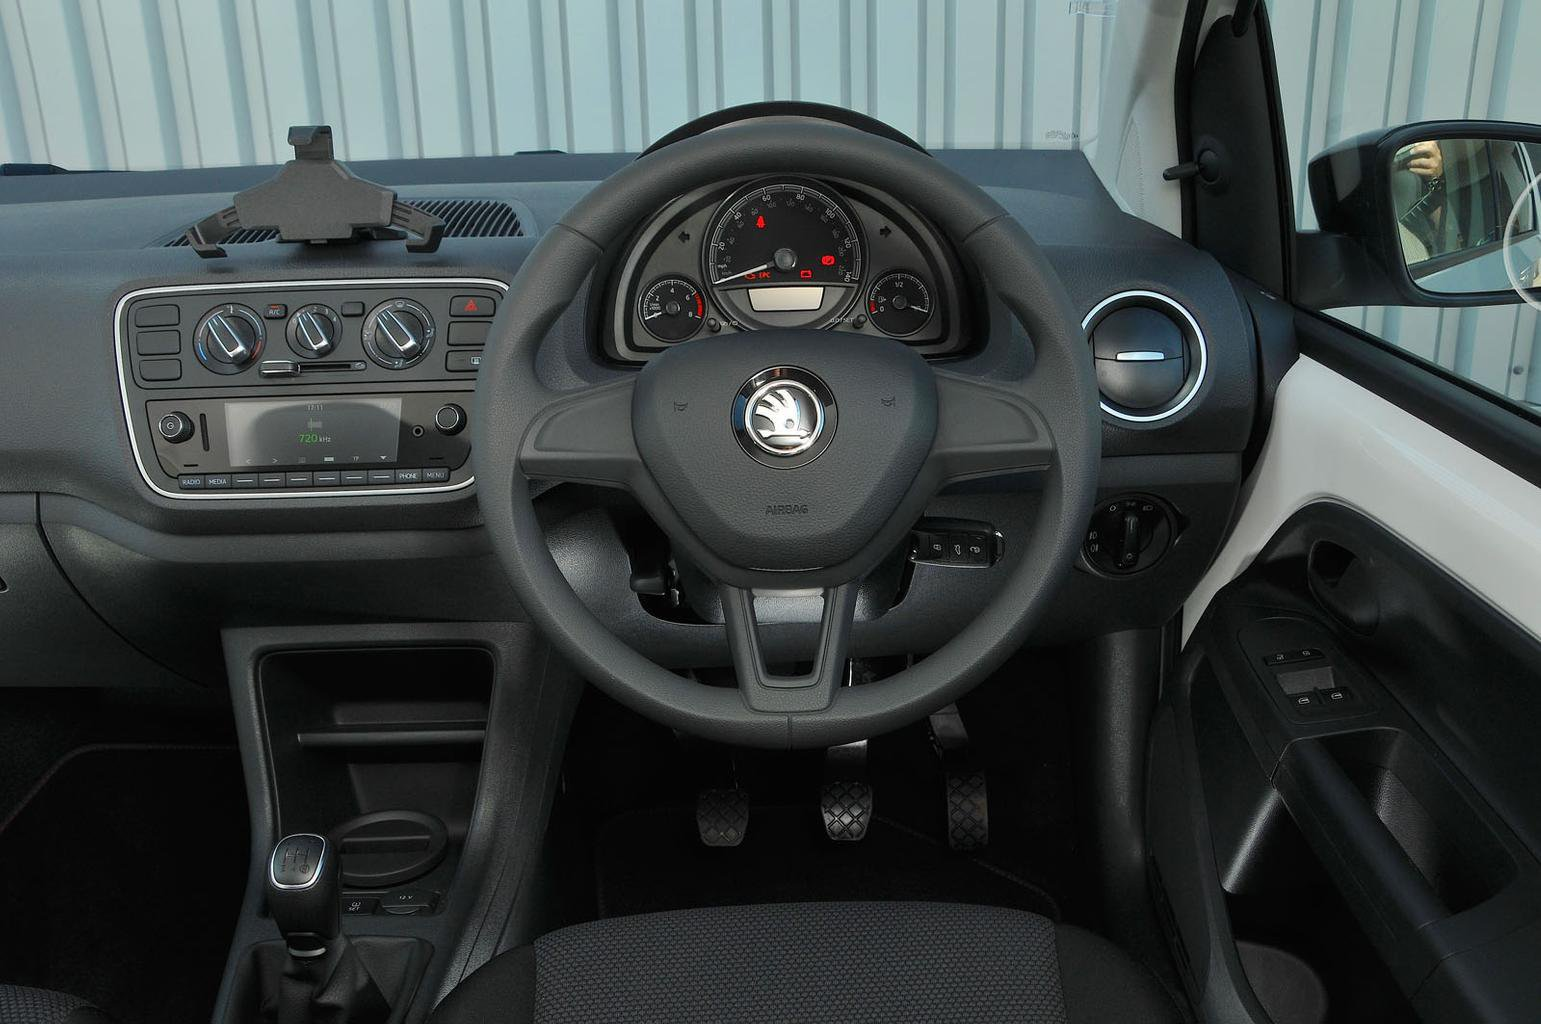 Skoda Citigo - interior